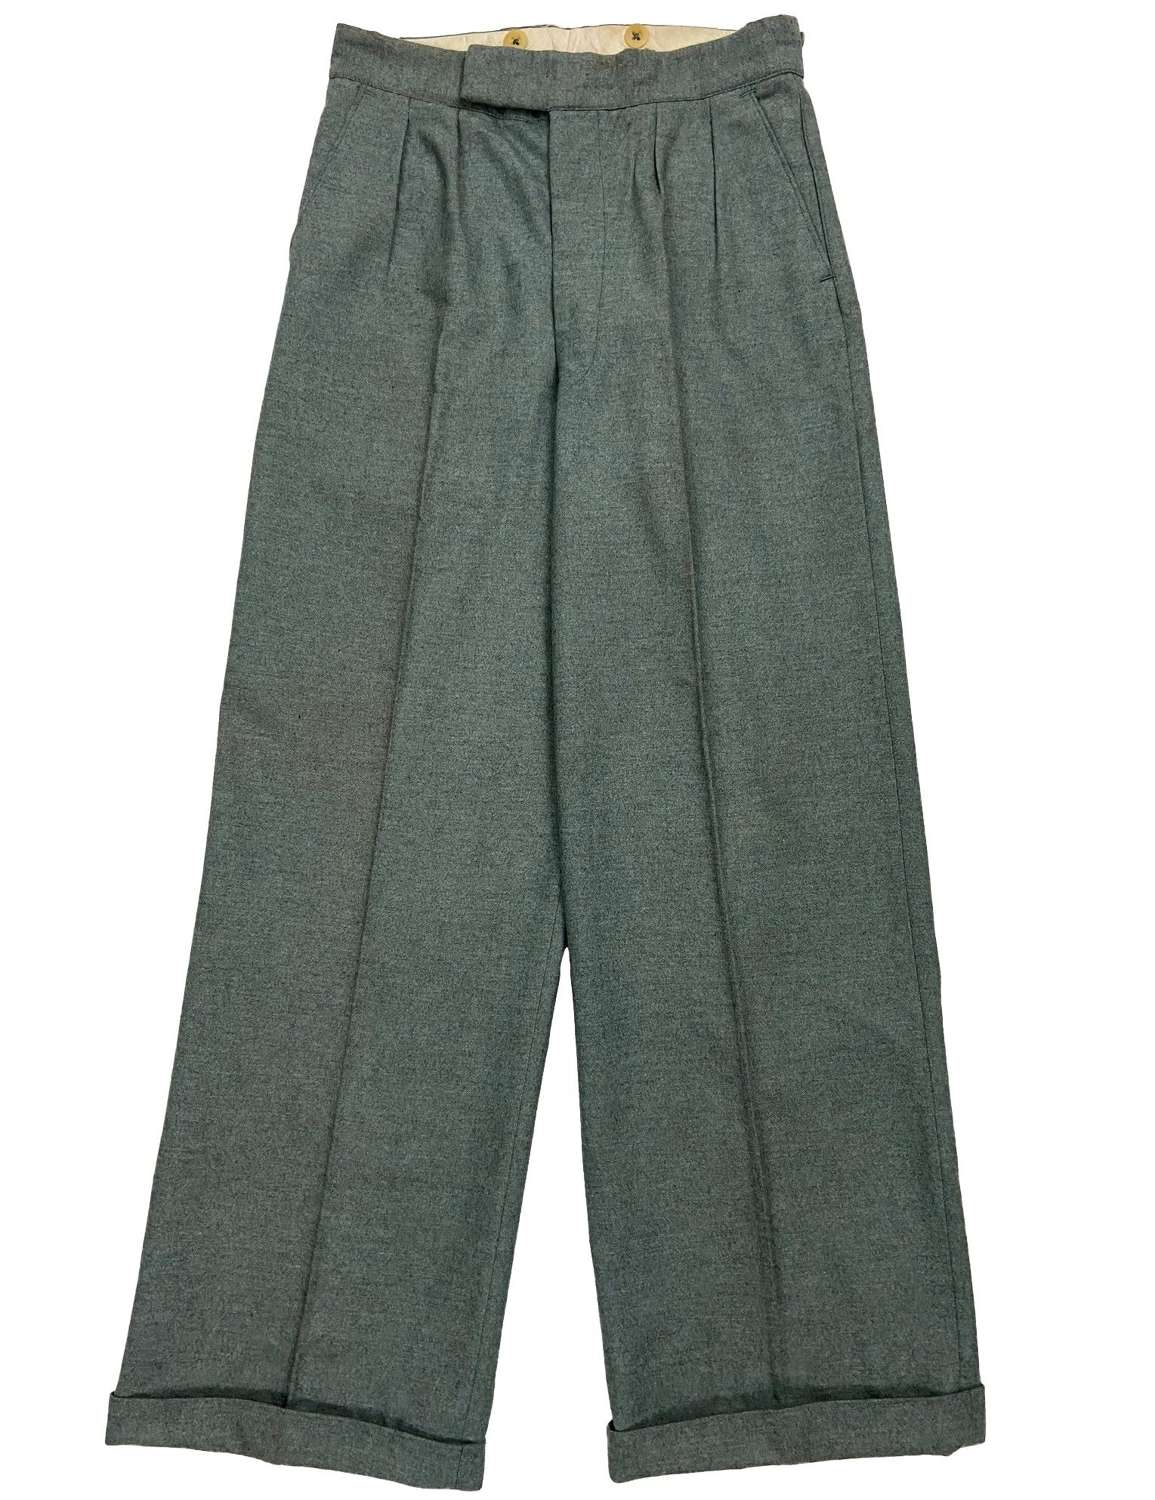 Rare 1940s CC41 Teal Grey Men's Flannel Trousers